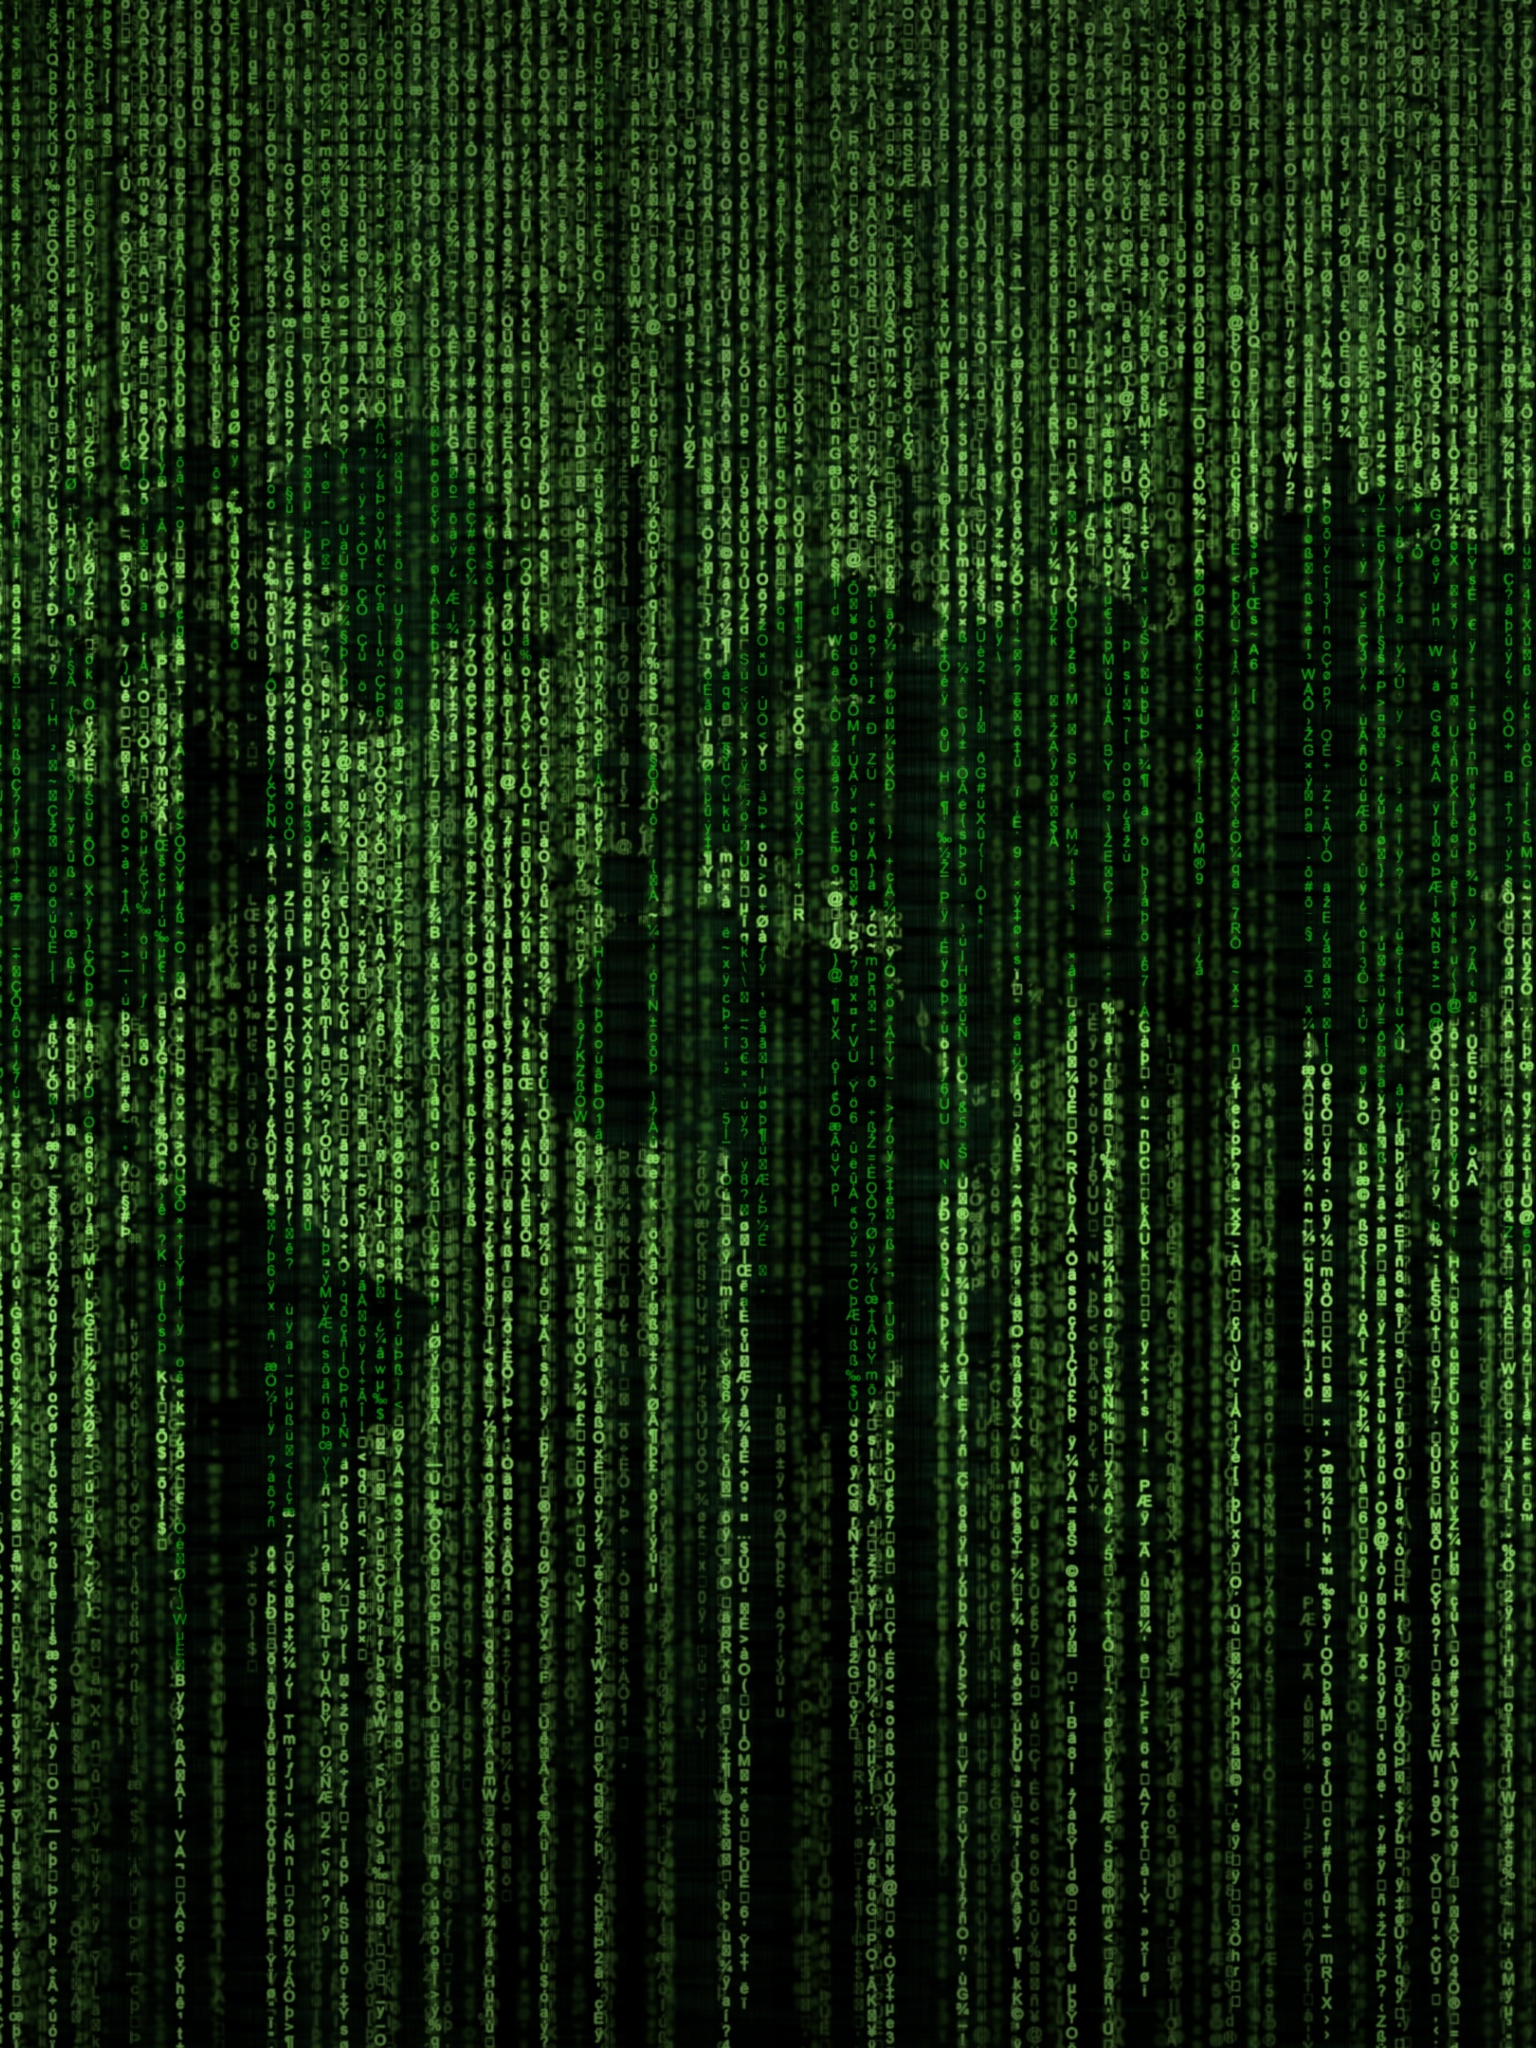 Free Download Green Matrix Code World Map 4k Hd Desktop